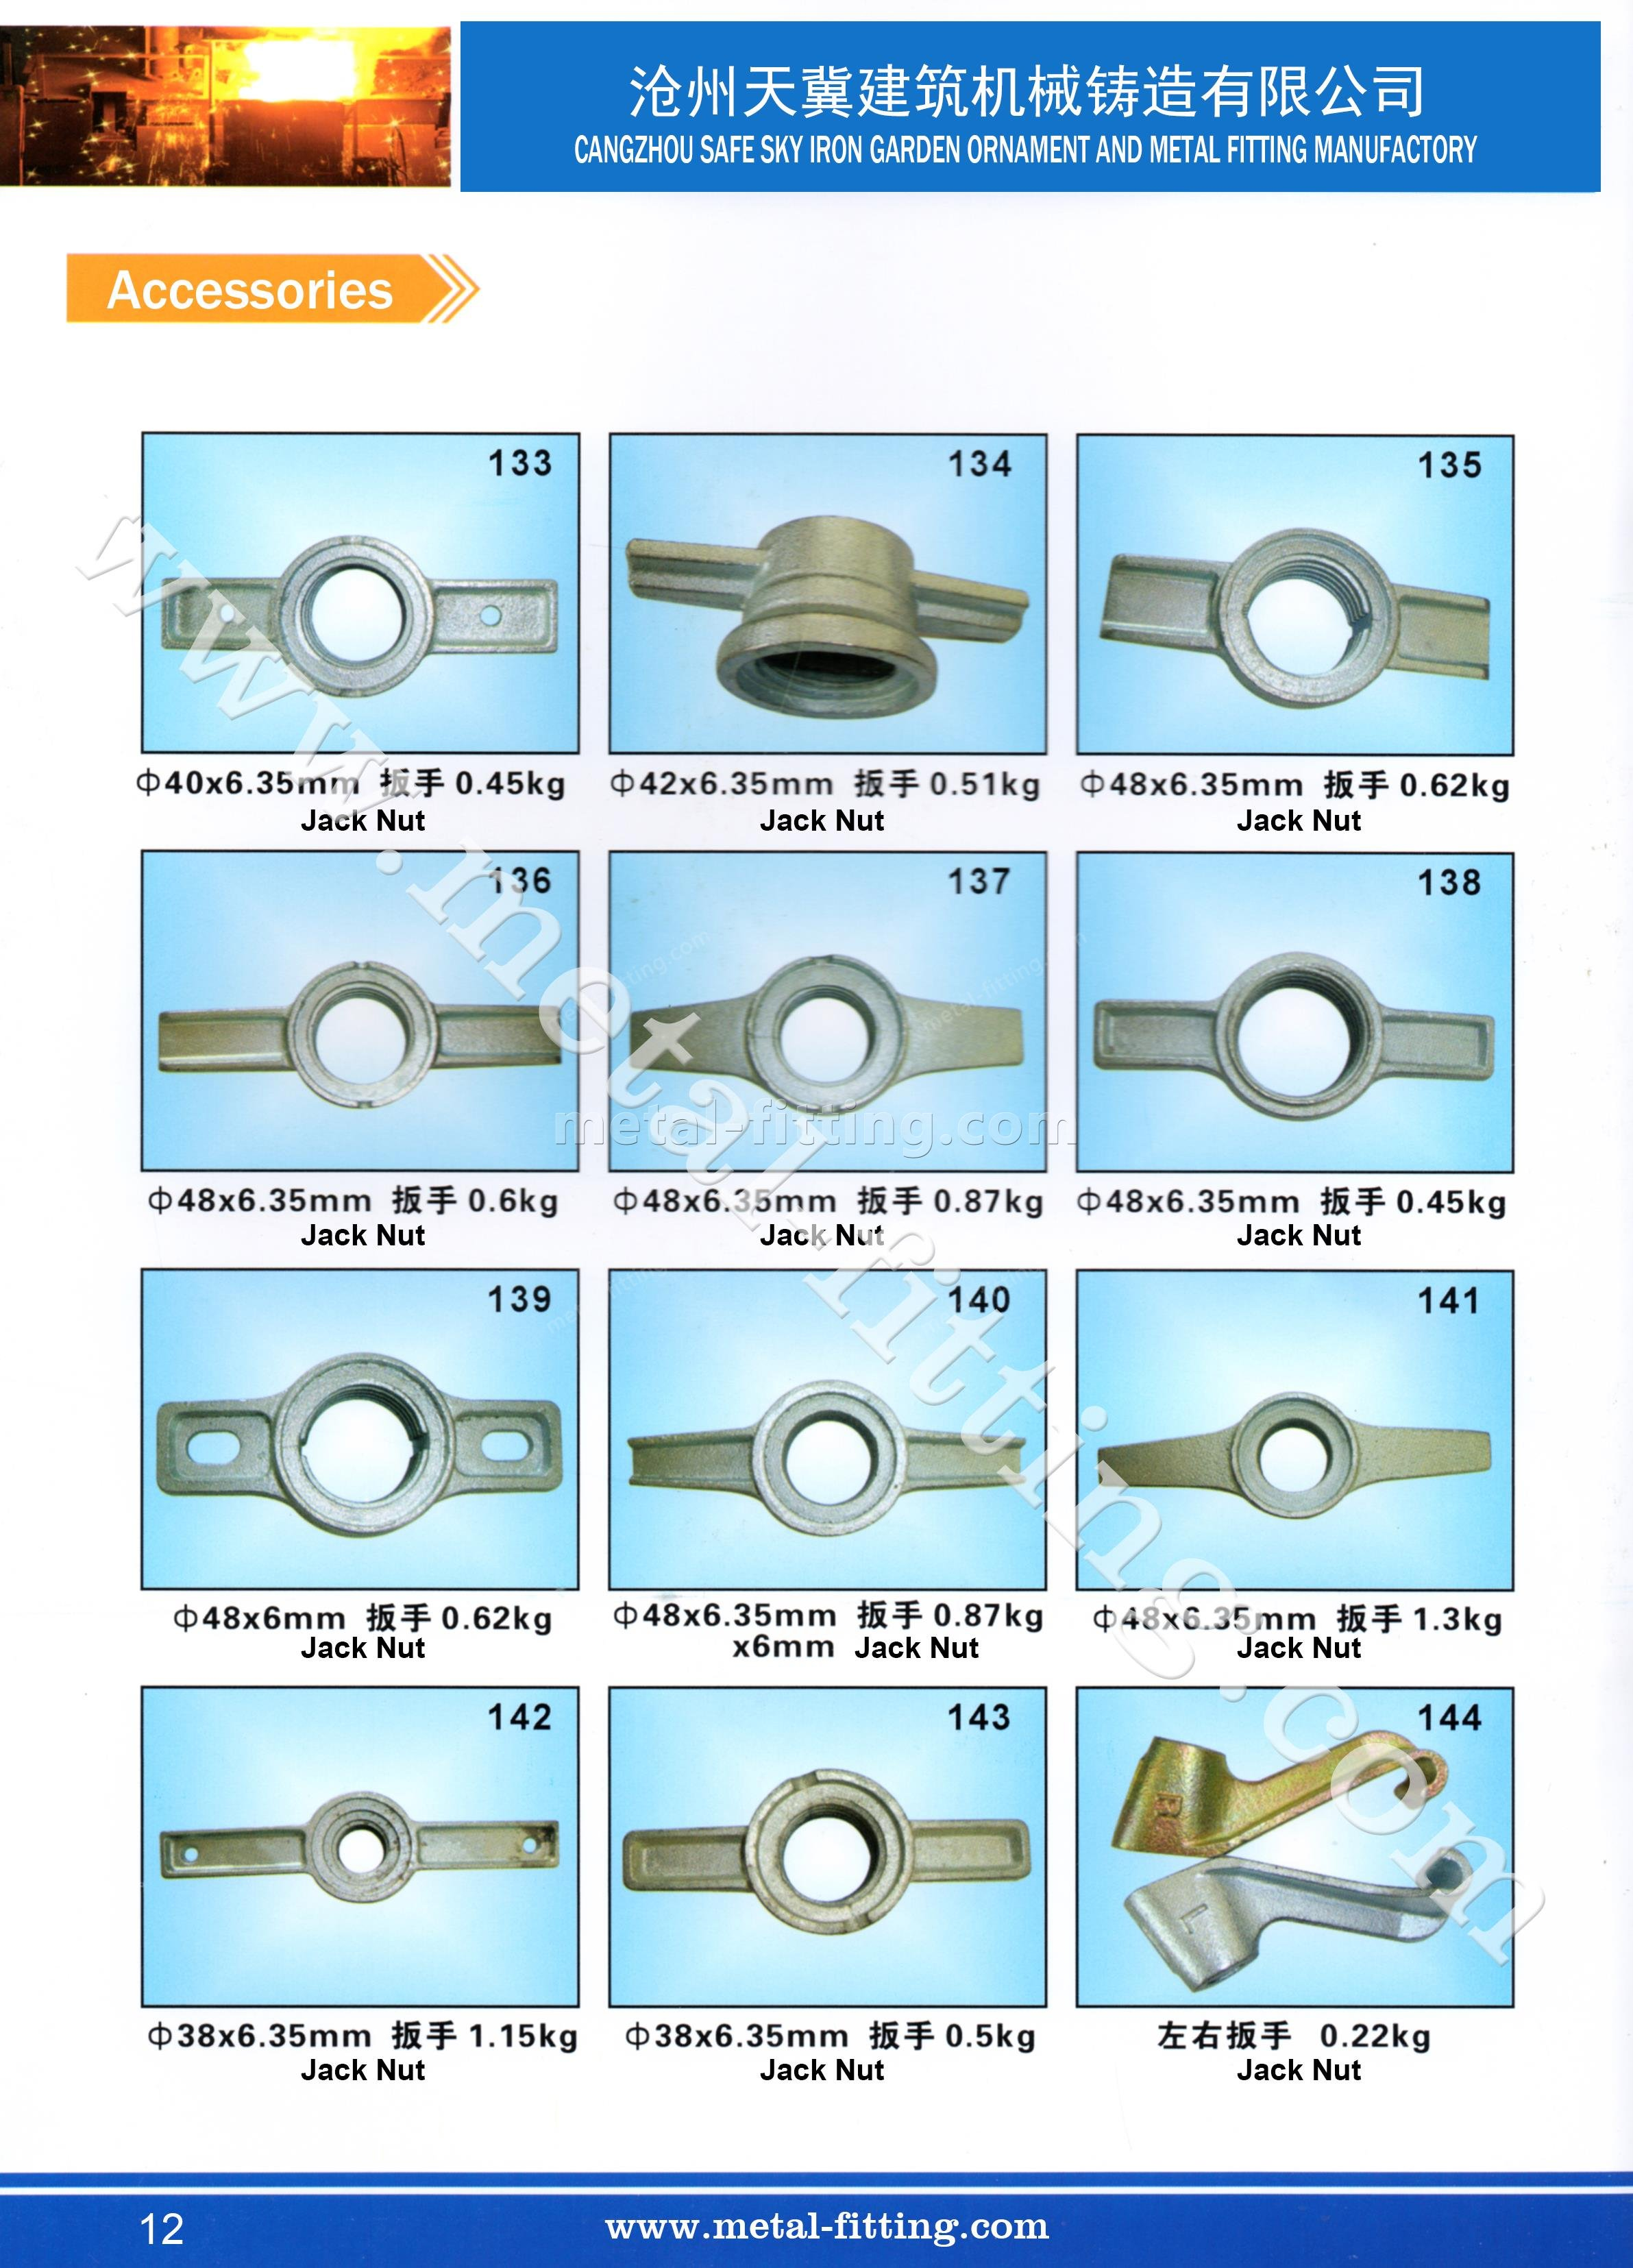 casting steel metal fitting, scaffolding system-12